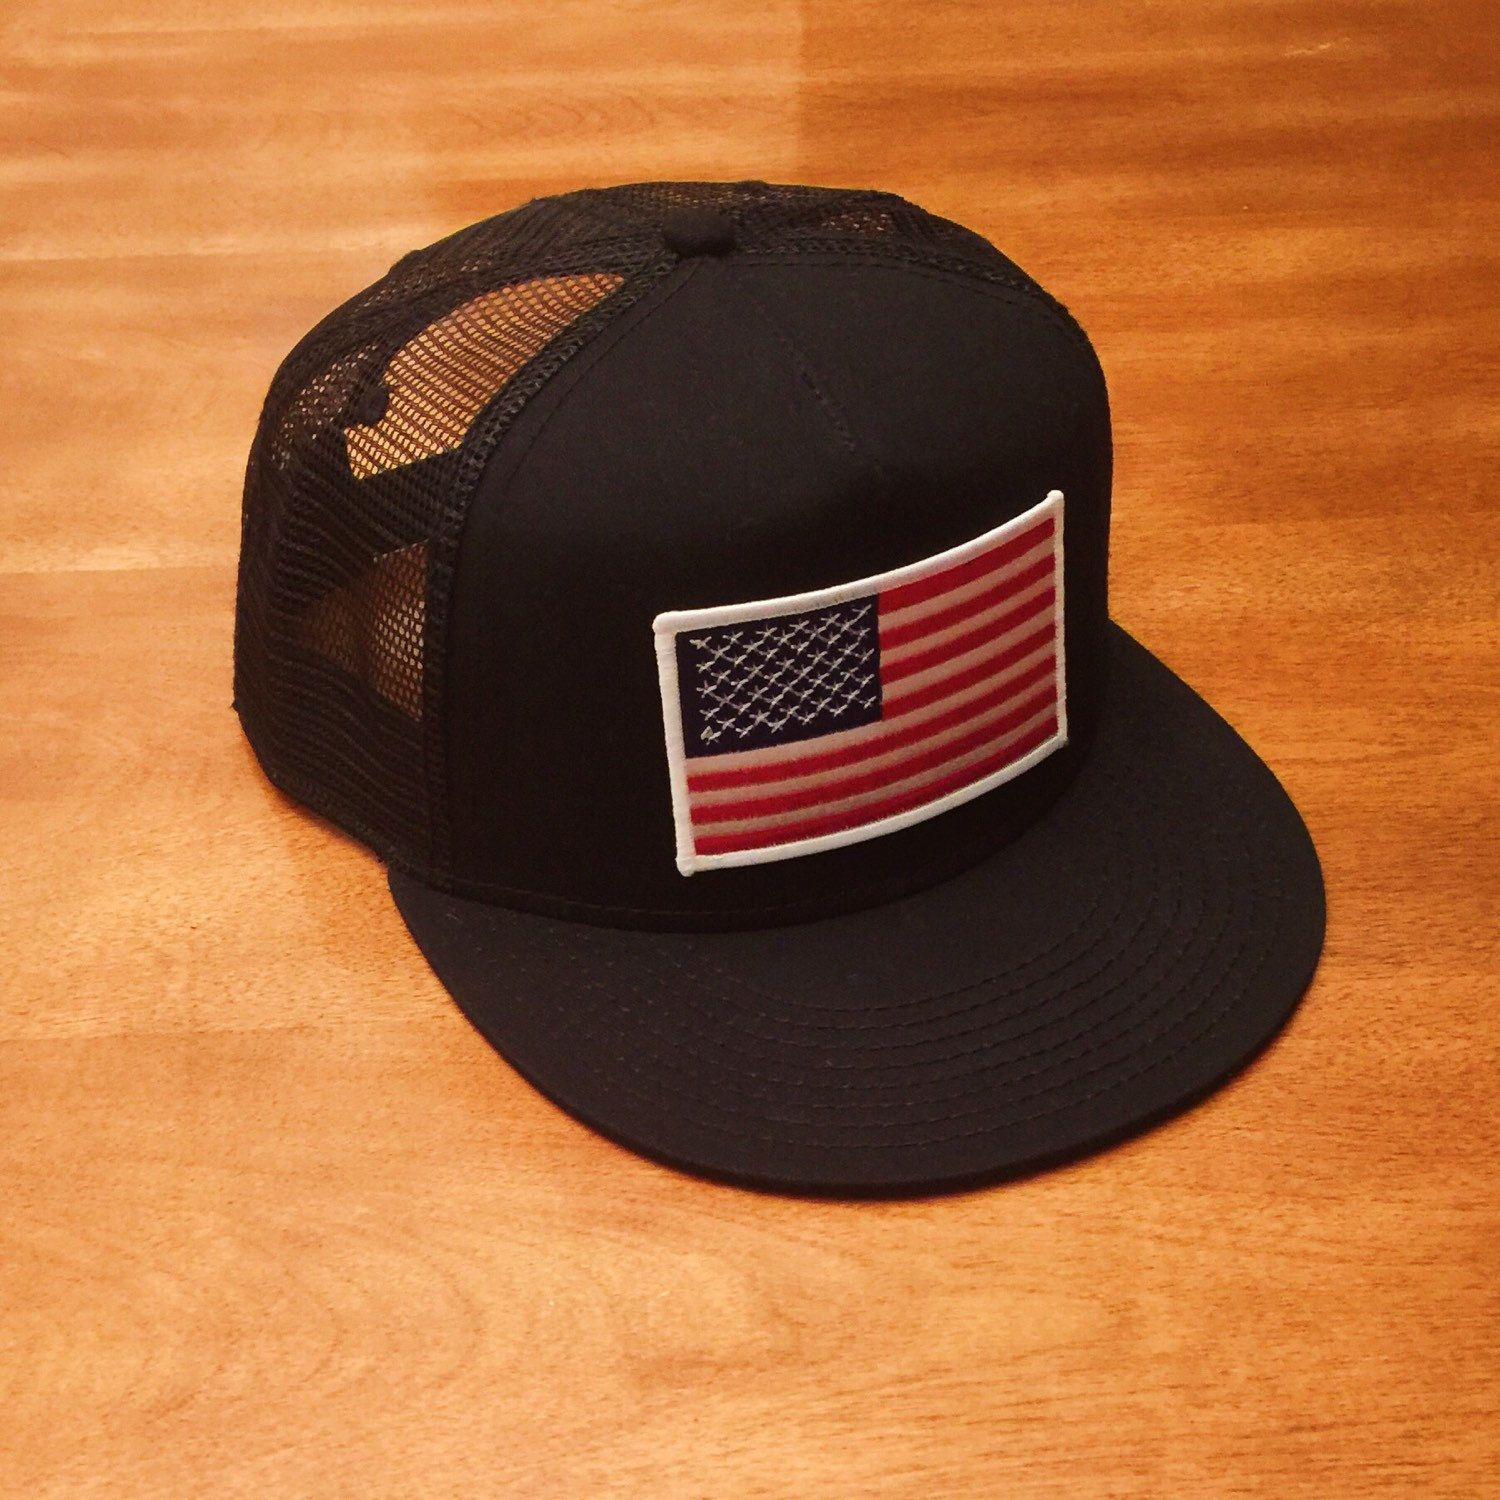 2b2b6fe5843 Buy these for the 4th of July weekend!! american flag trucker hat ...